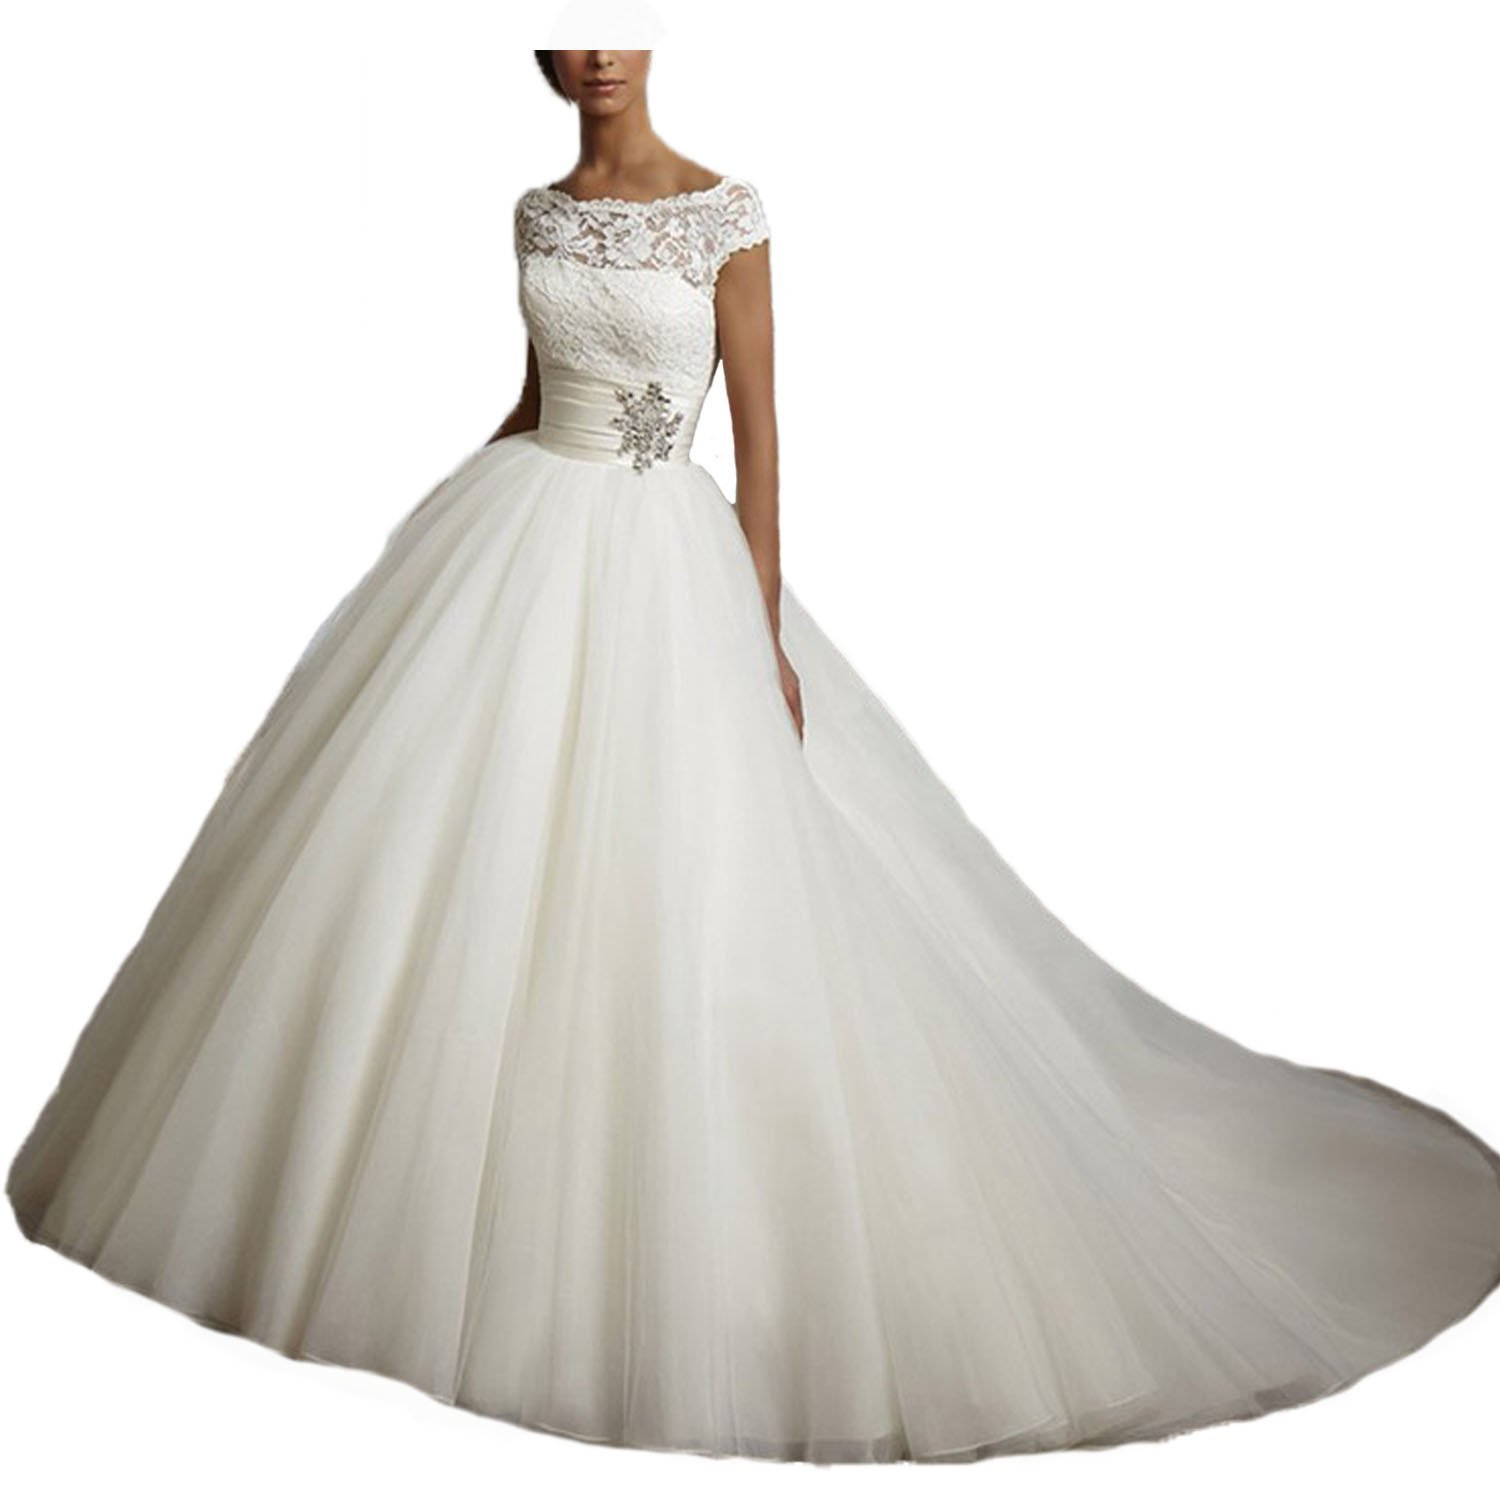 2018 Boat Neck Tulle Long Ivory Lace Wedding Dresses For Bride Cap Sleeves Maxi Gown(16, Ivory)